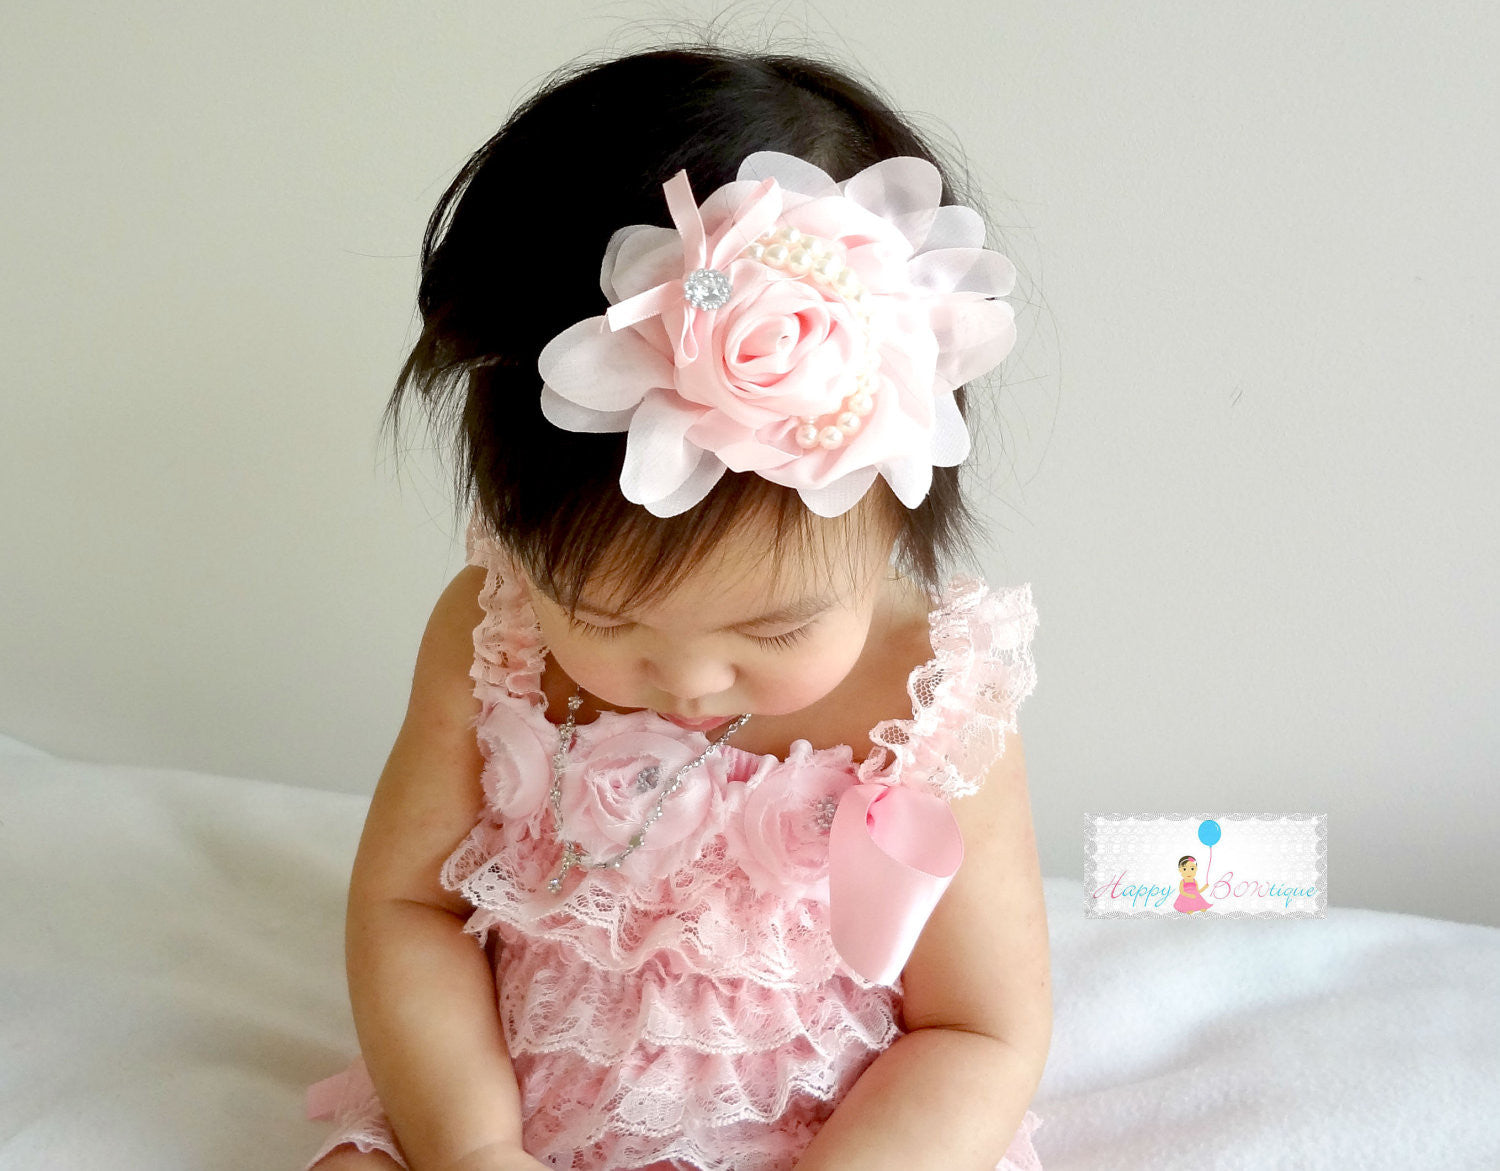 Beautiful Baby PInk Chiffon Rosette Pearls headband - Happy BOWtique - children's clothing, Baby Girl clothing